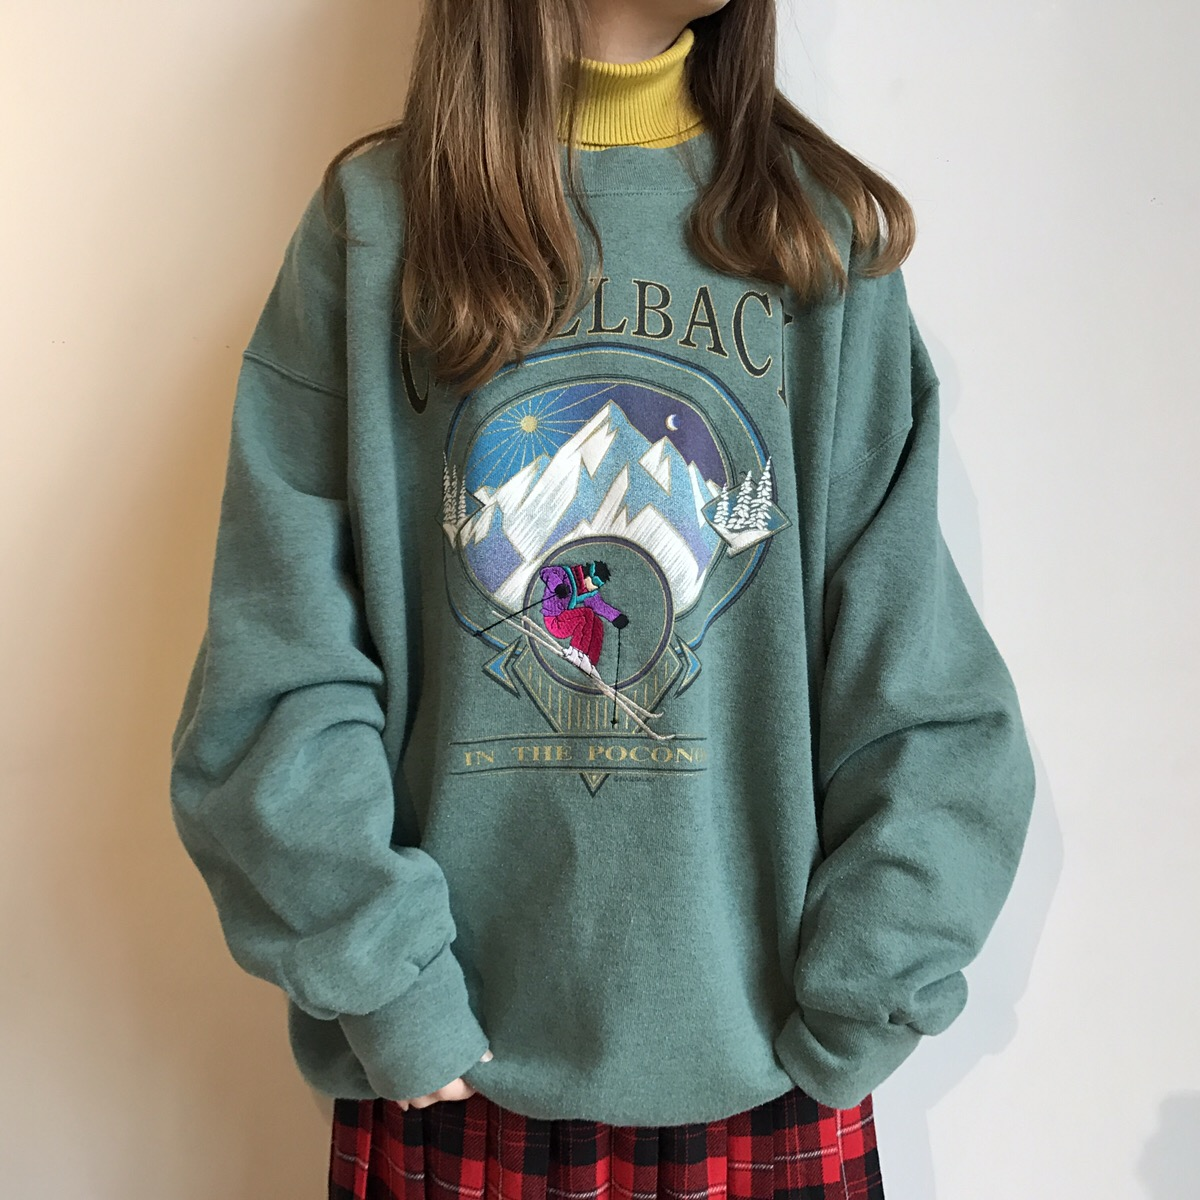 90s sweat made in USA